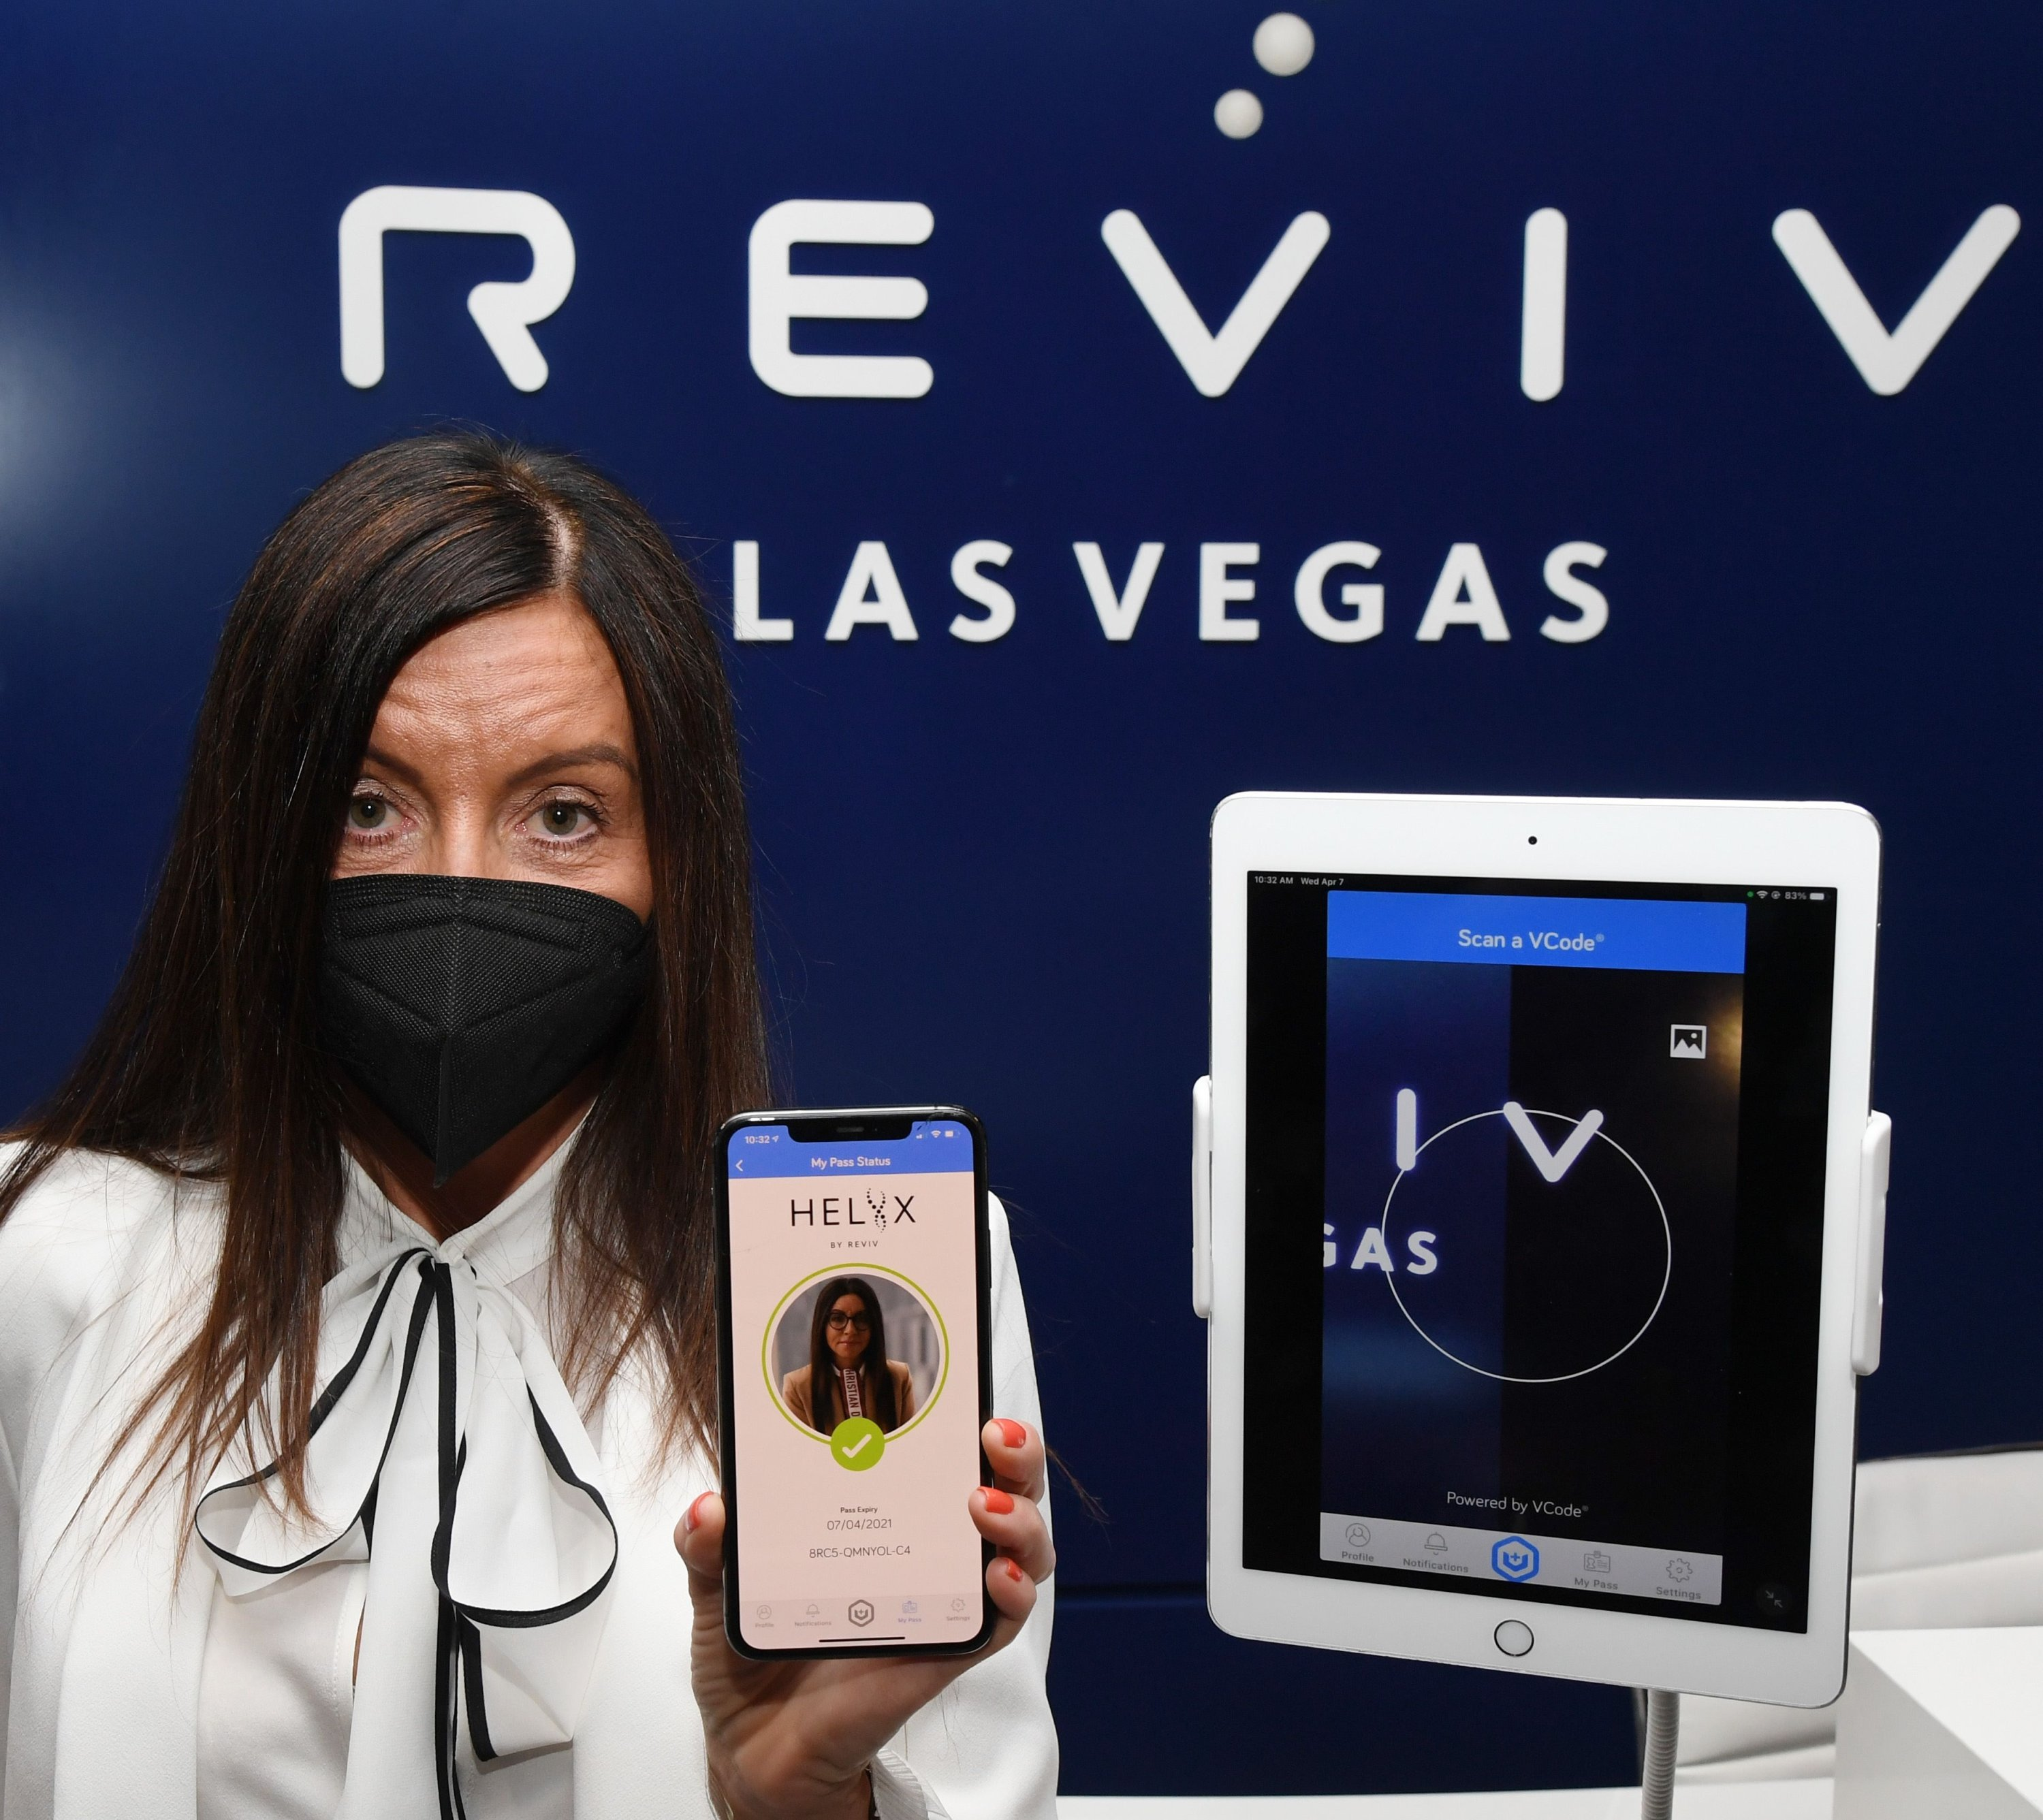 REVIV Global President and CEO Sarah Lomas uses a cell phone and an iPad to demonstrate the HELIIX Health Passport at REVIV at The Cosmopolitan of Las Vegas in Las Vegas, Nevada, April 7, 2021. (Getty Images/AFP)